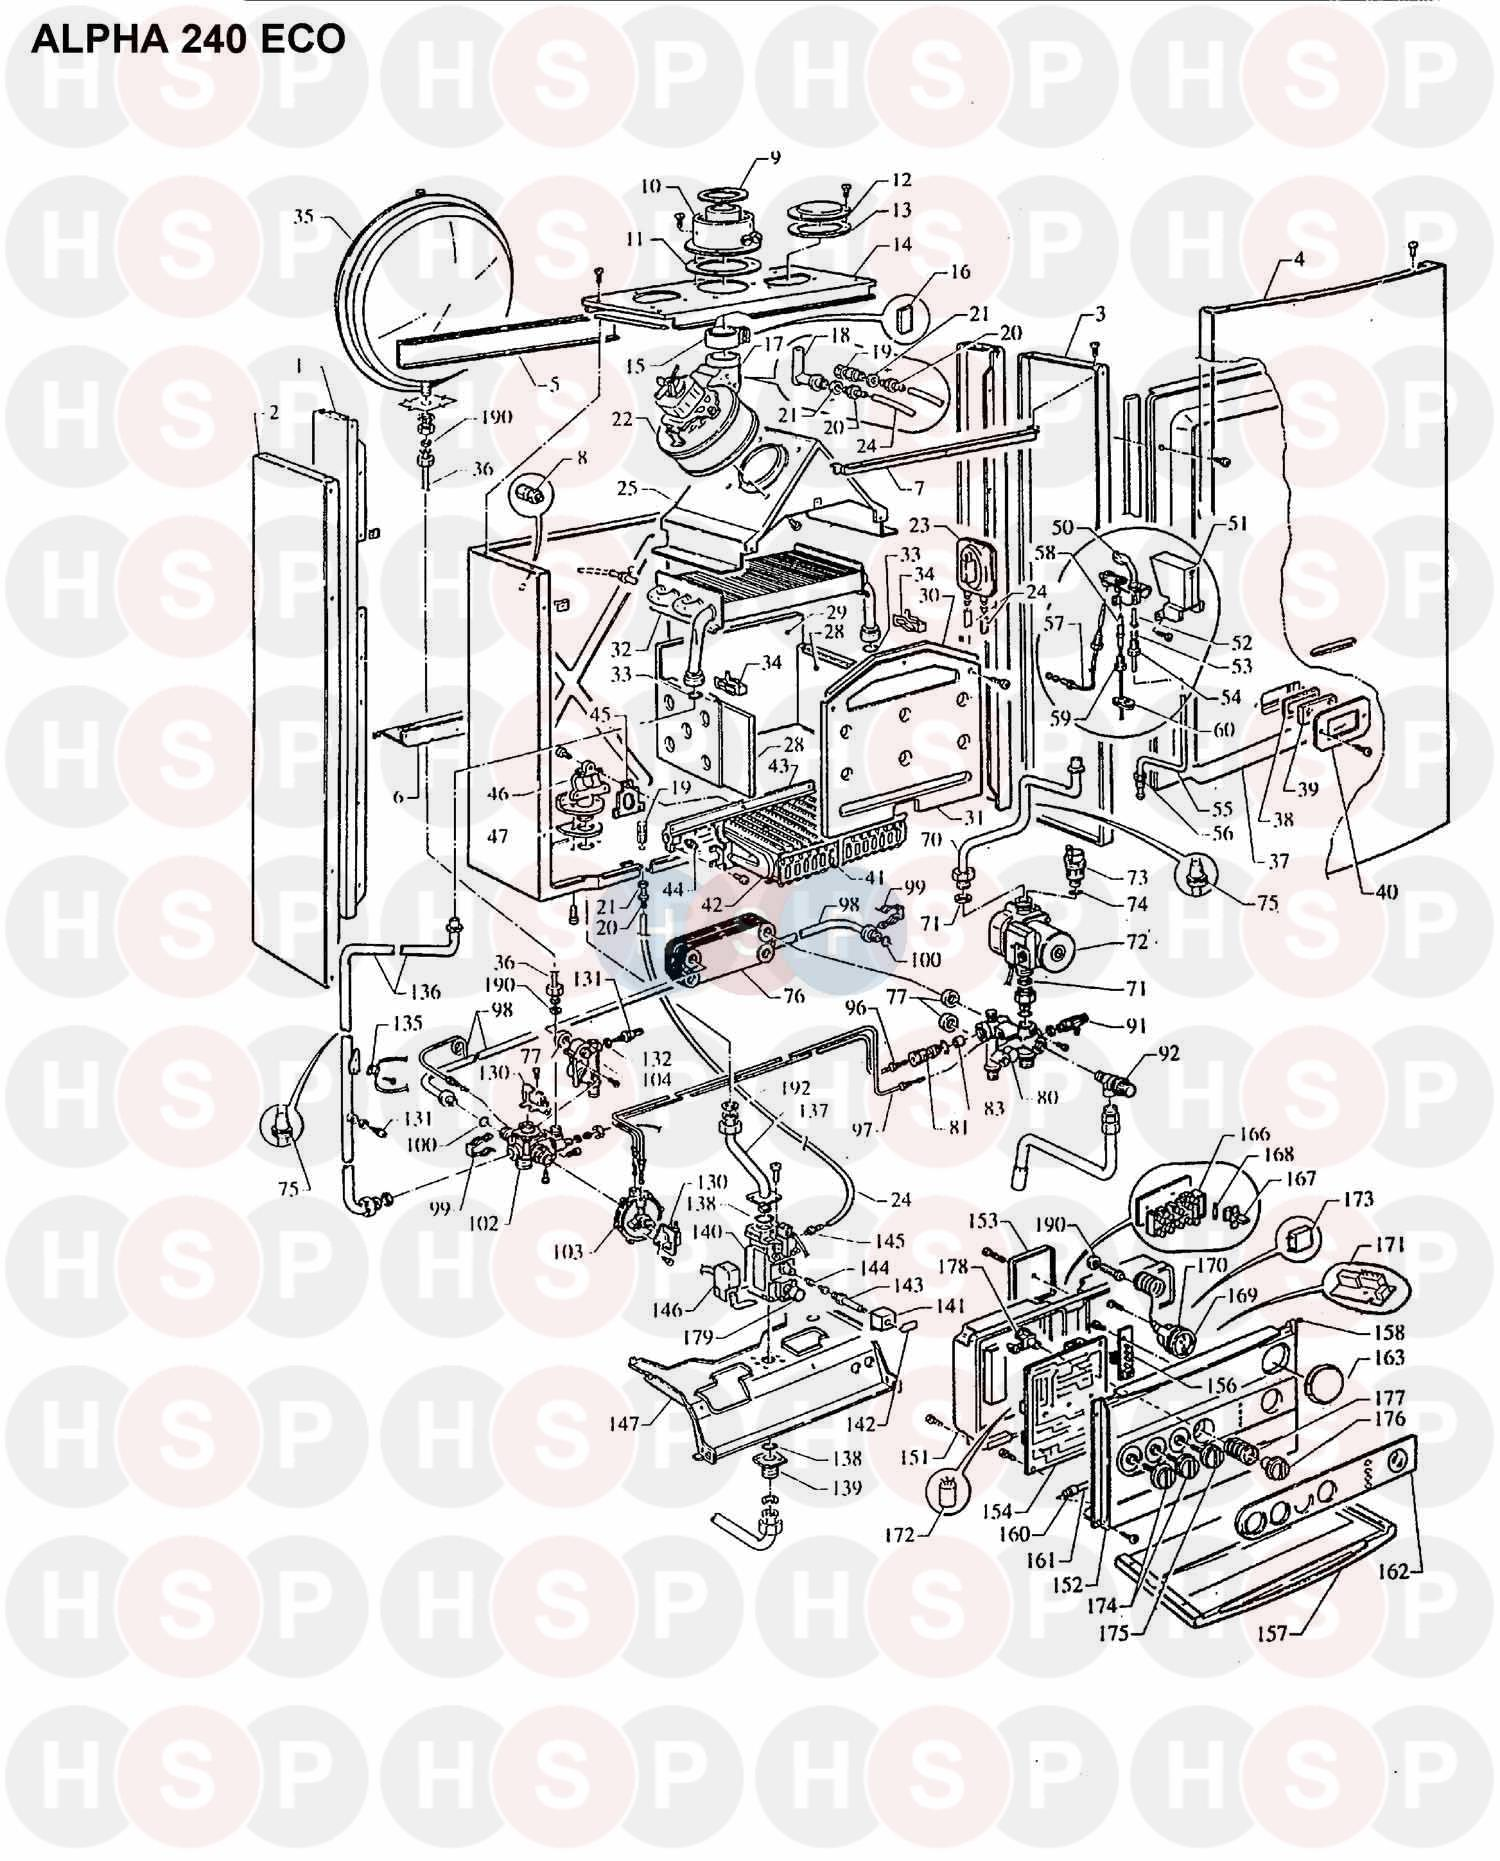 alpha 240 eco  boiler assembly 1  diagram